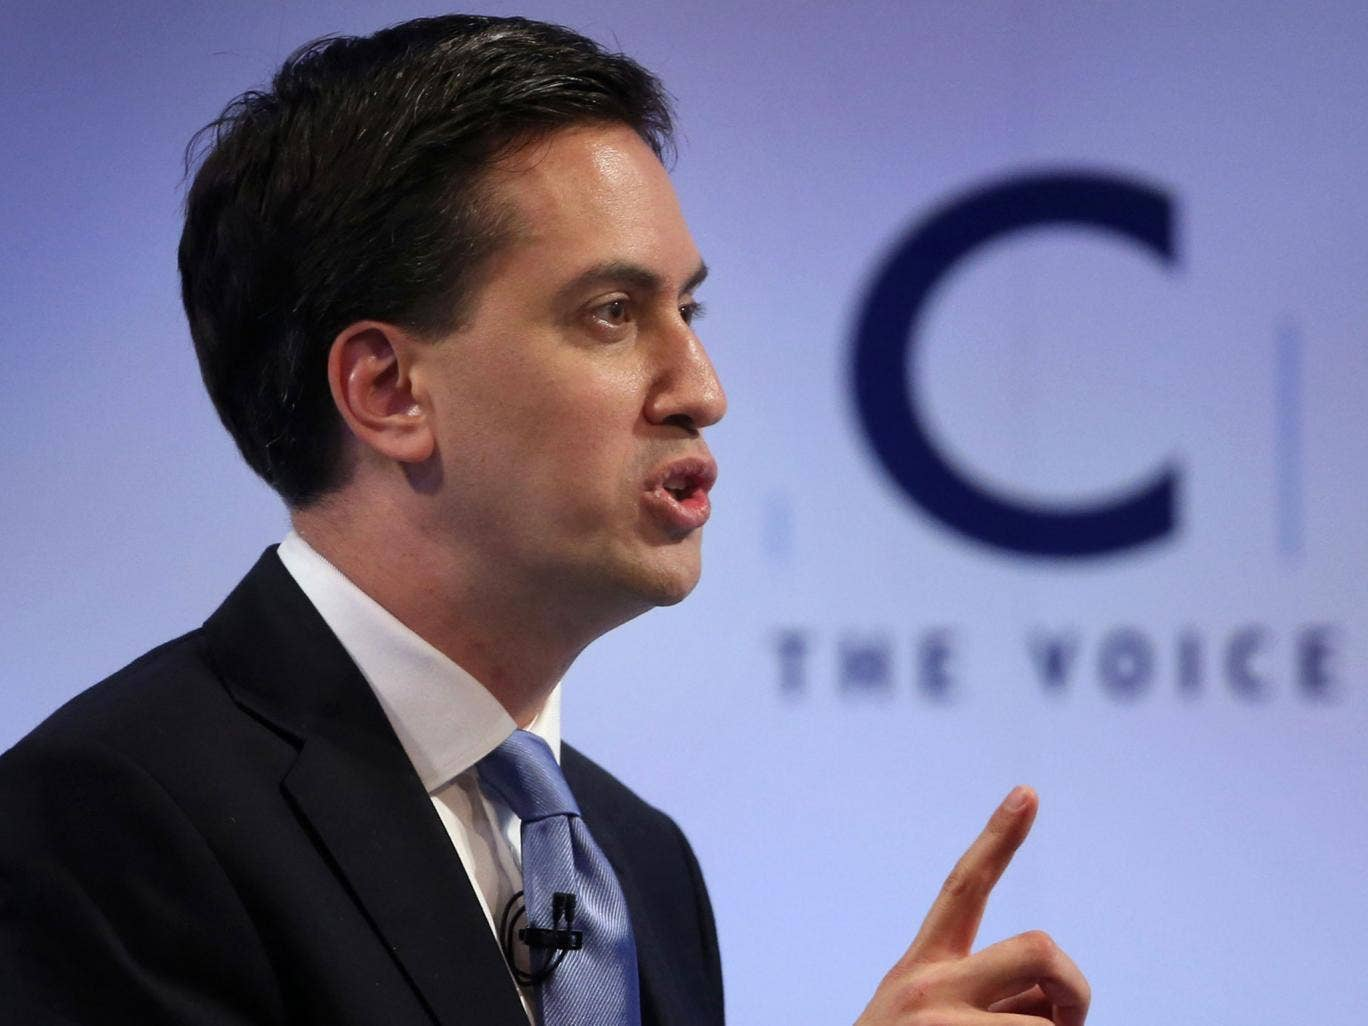 The wrong Miliband has decided to sever ties with the unions